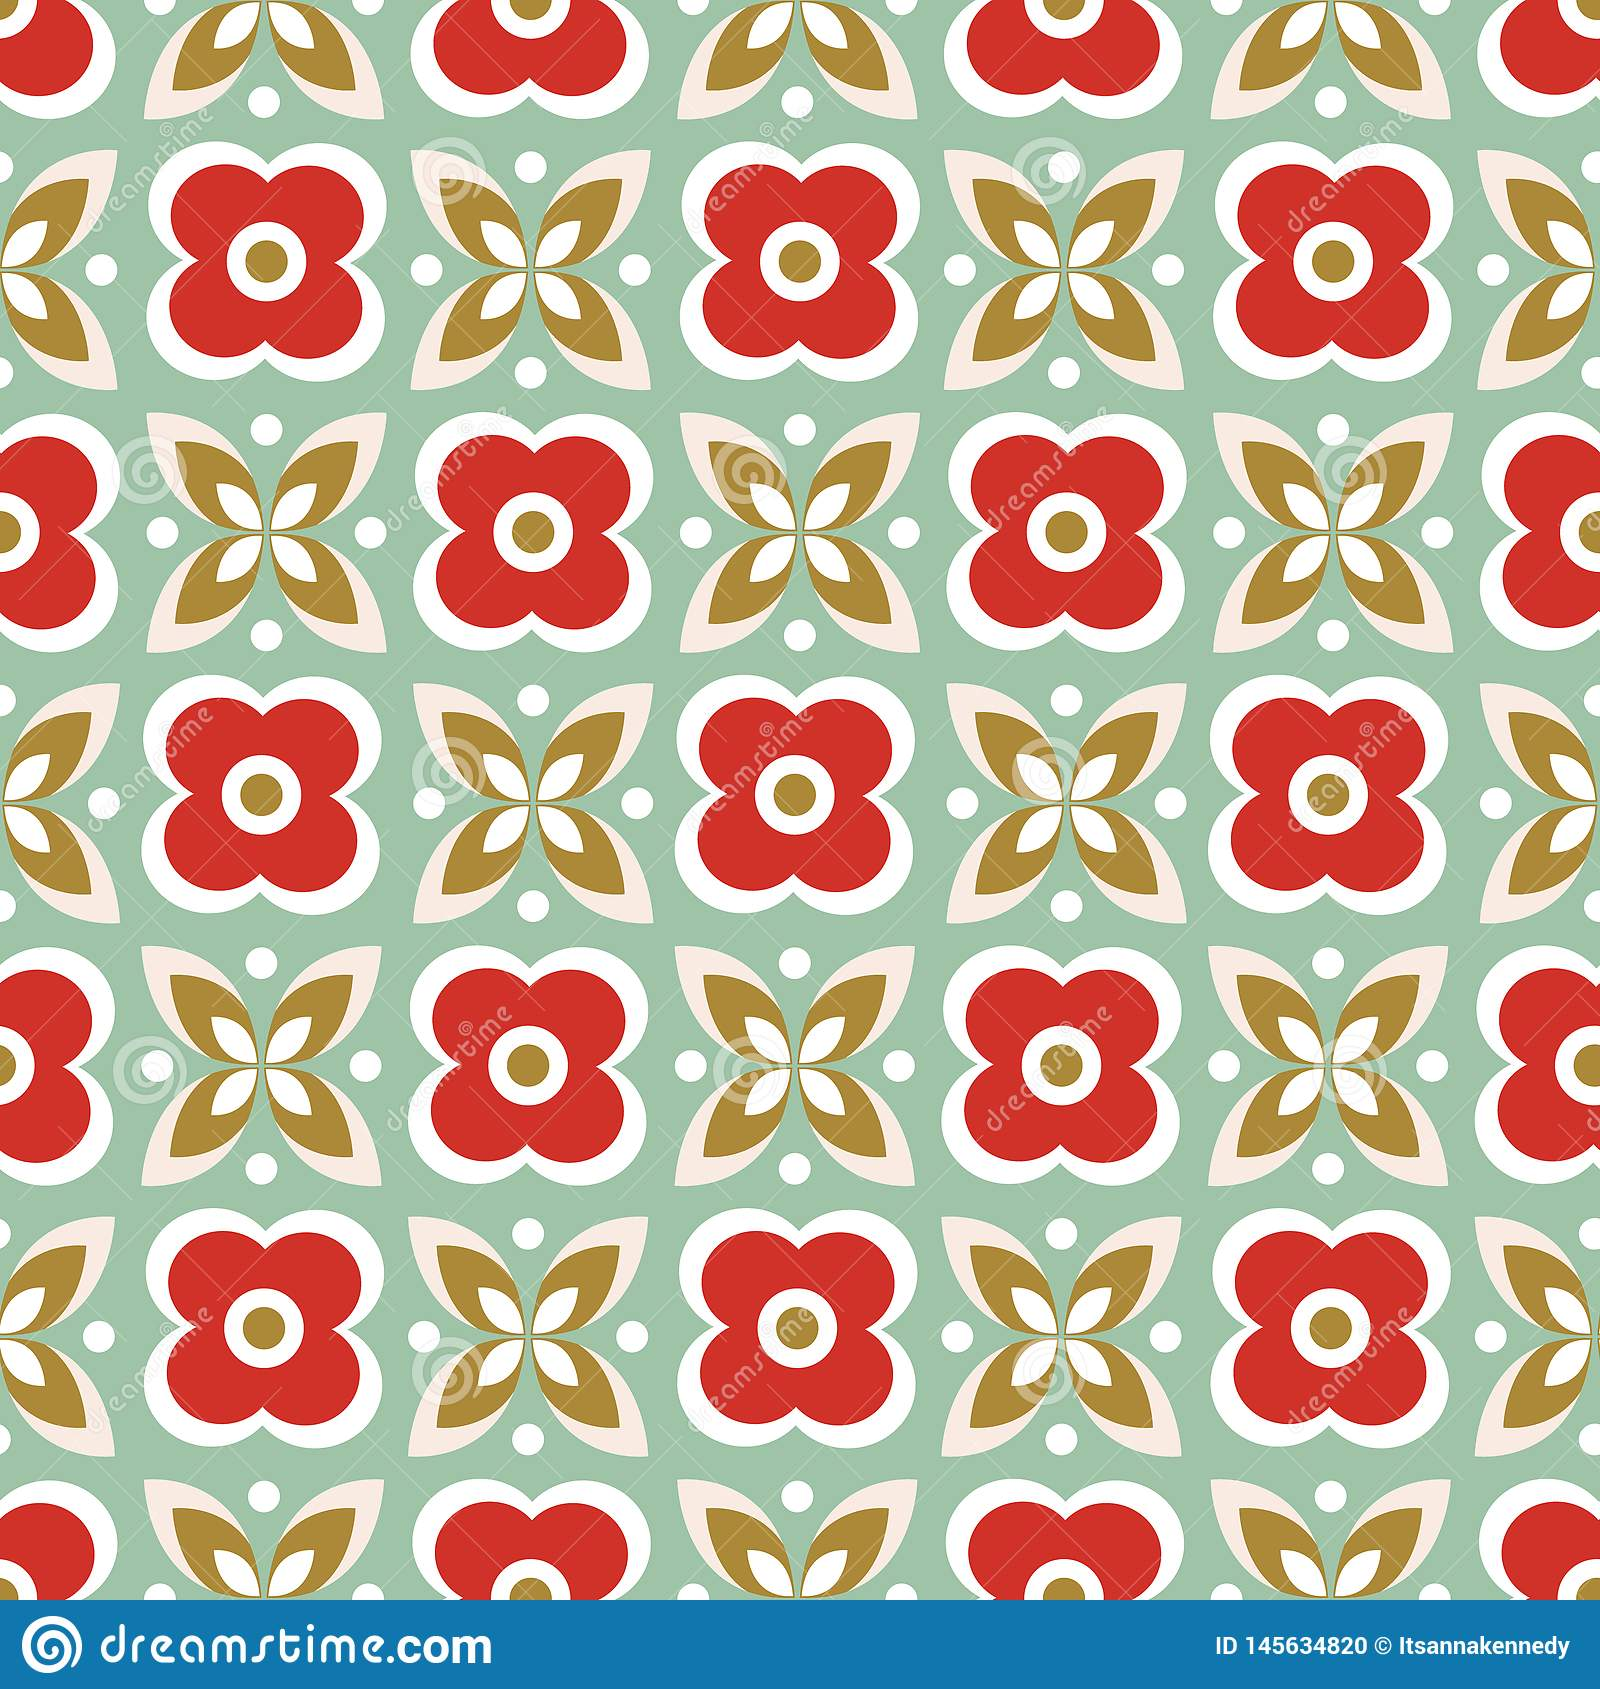 Seamless repeat pattern of stylized red flowers and green leaves in a geometric design. Vector background ideal for